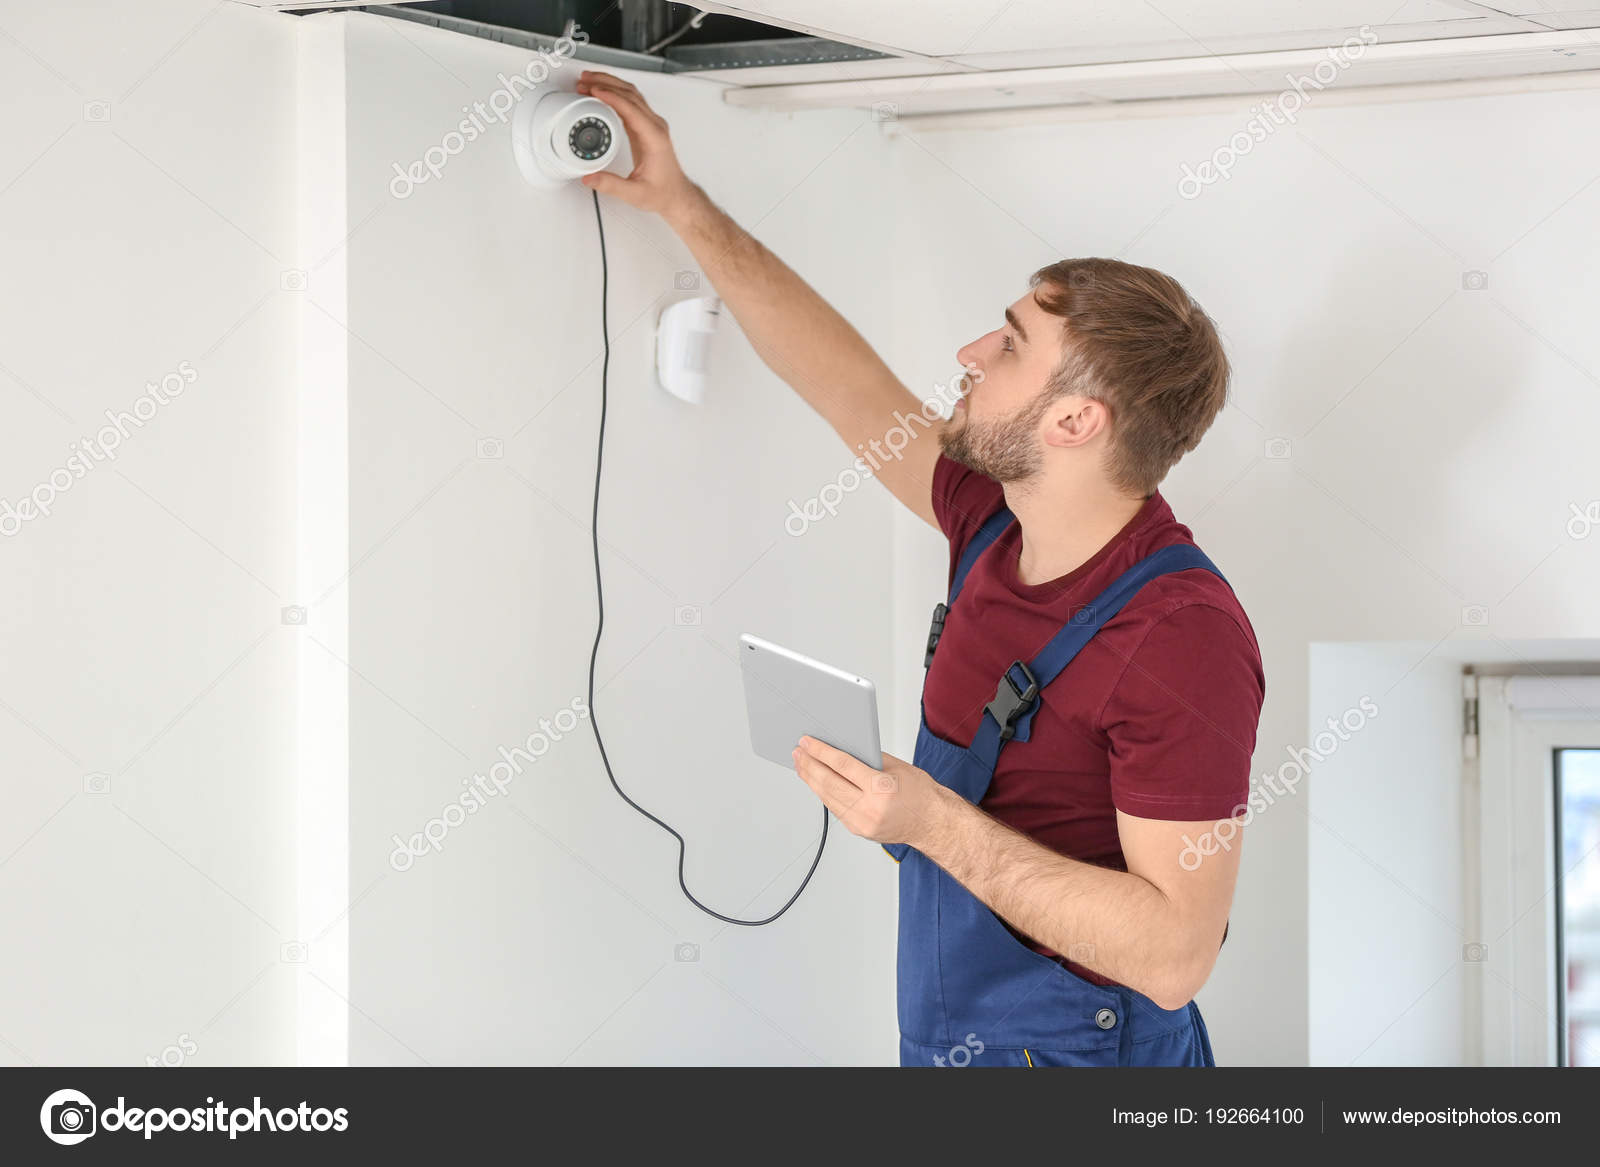 Electrician installing security camera indoors — Stock Photo ... on wiring a smoke detector, wiring a power supply, wiring a spy cameras, wiring a cable box, wiring a network, wiring a car, wiring a swimming pool, wiring a motion sensor,